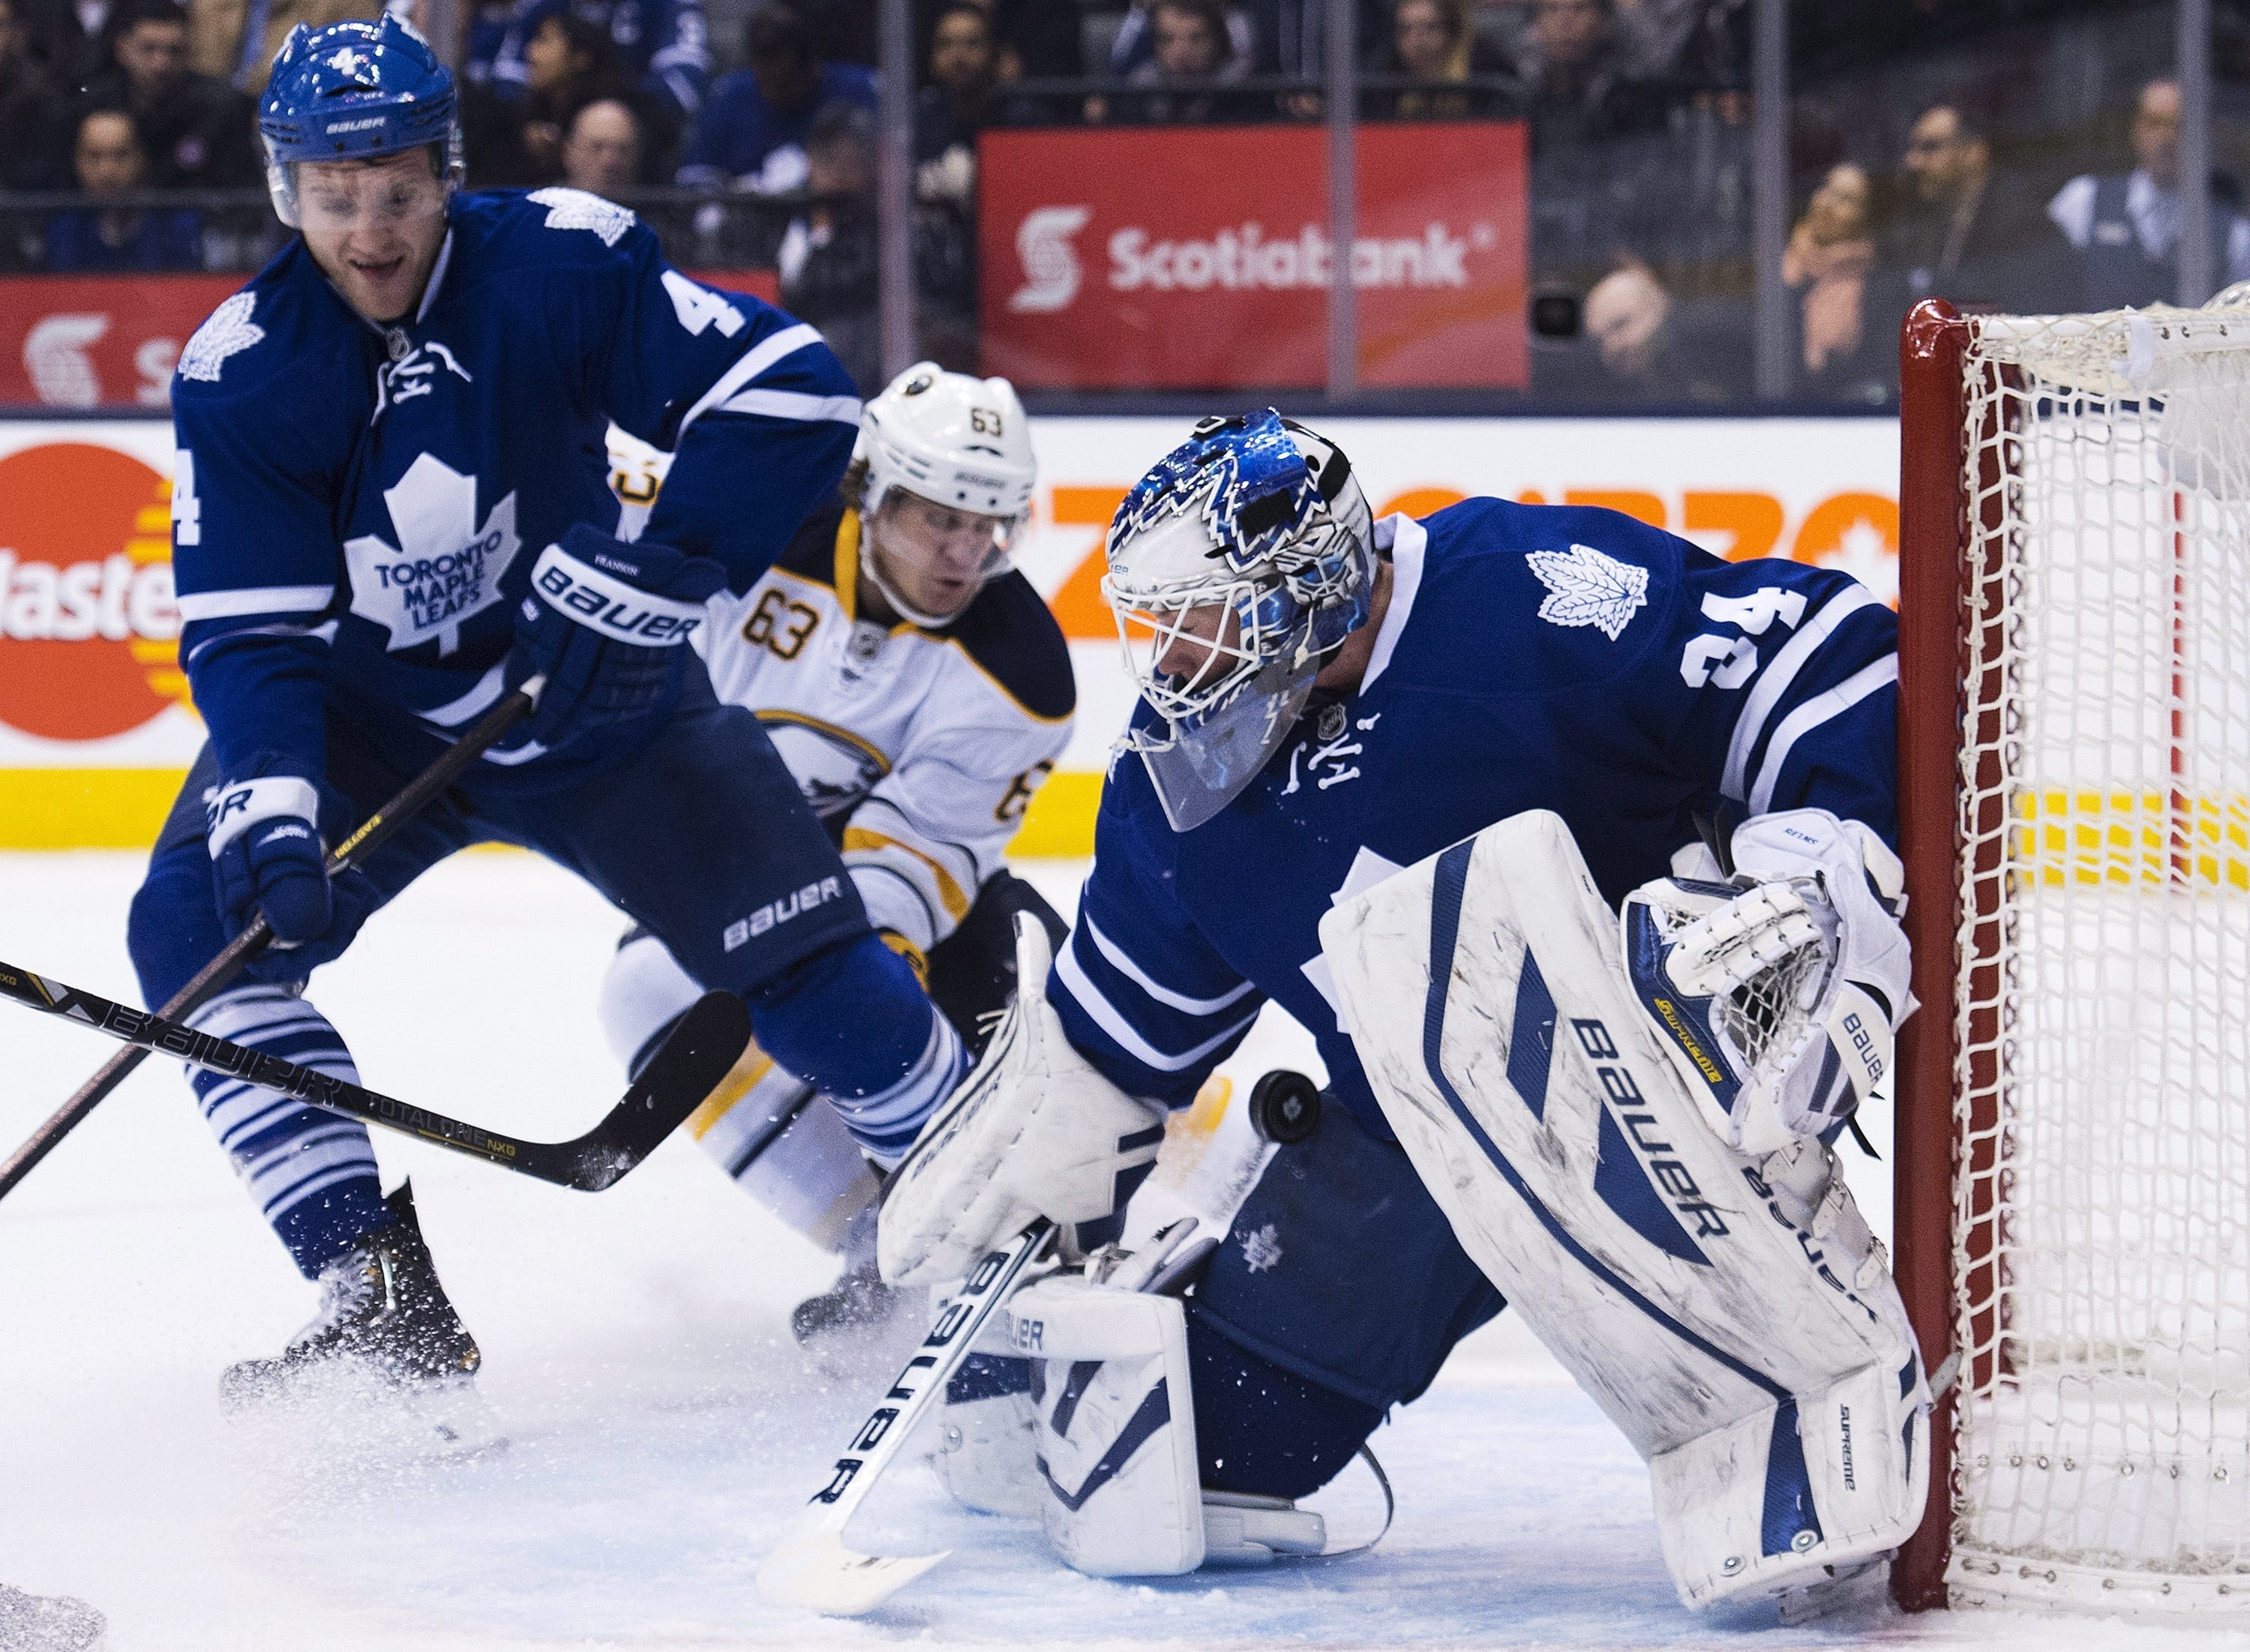 Maple Leafs goalie James Reimer makes a save as Leafs defenseman Cody Franson, left, covers Buffalo's Tyler Ennis.